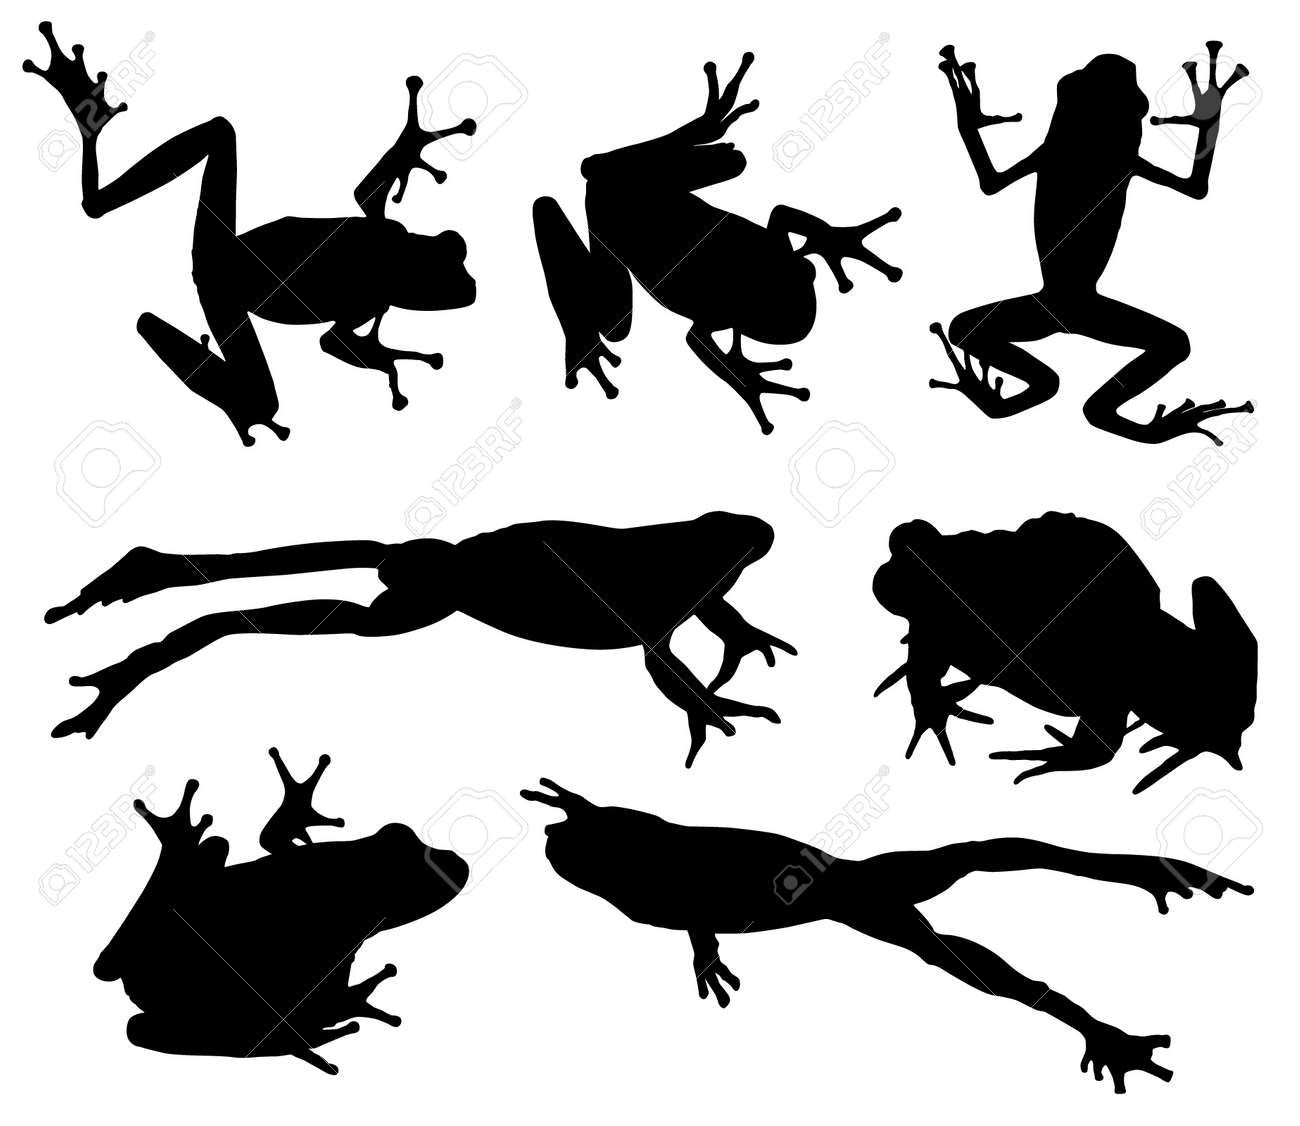 frog silhouette on white background royalty free cliparts vectors rh 123rf com Plant Silhouette Vector Mushrooms Silhouette Vector